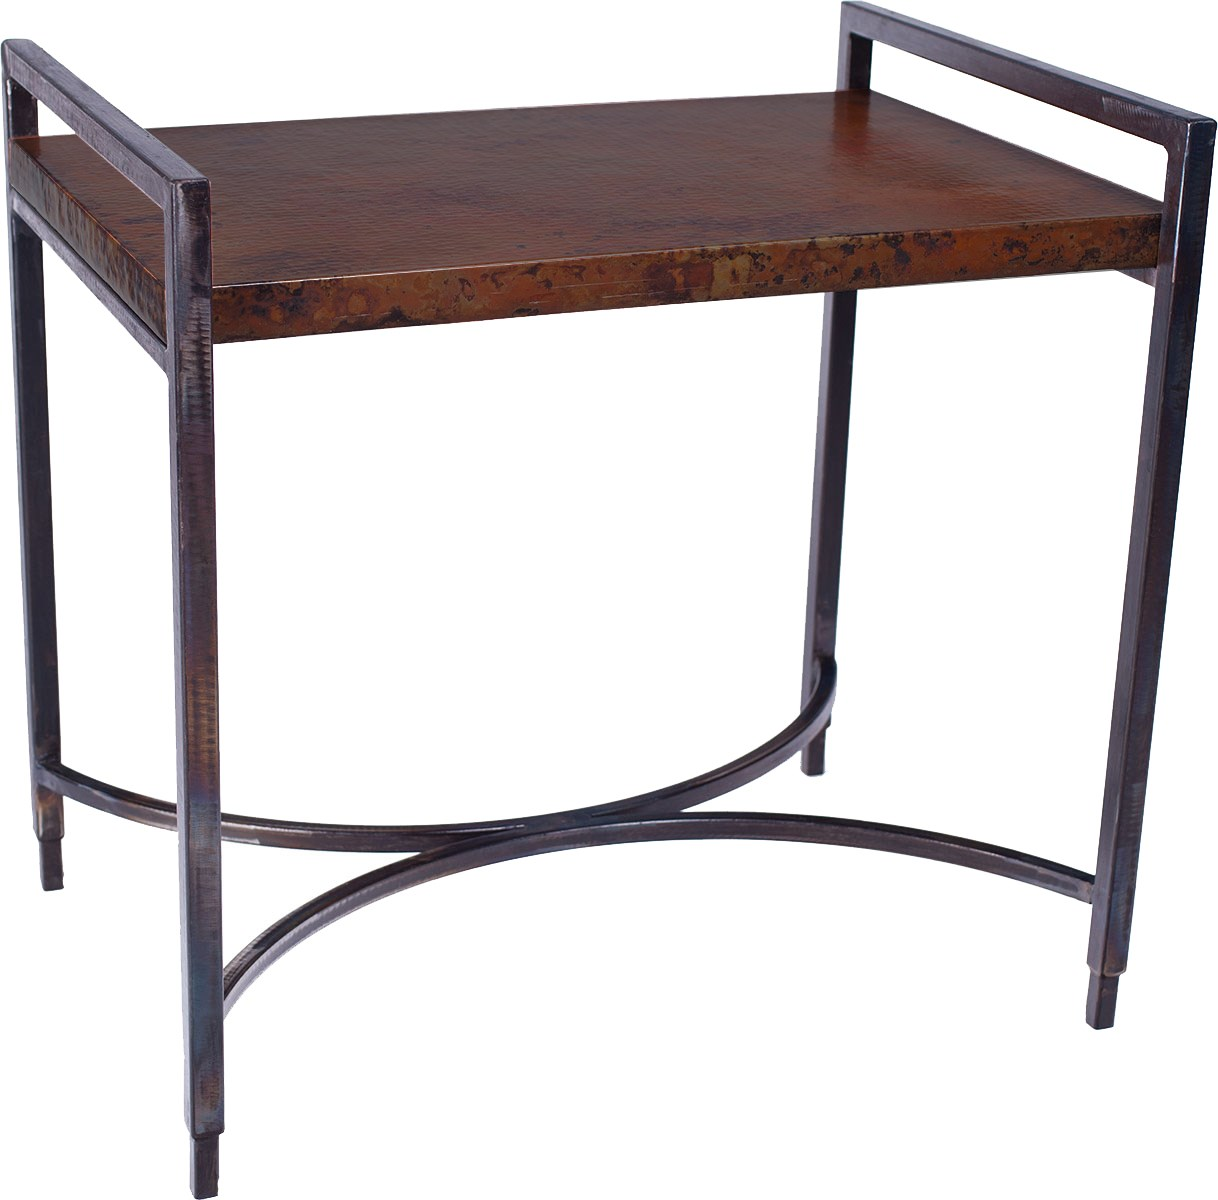 Rectangular Iron Tray Table With Dark Brown Hammered